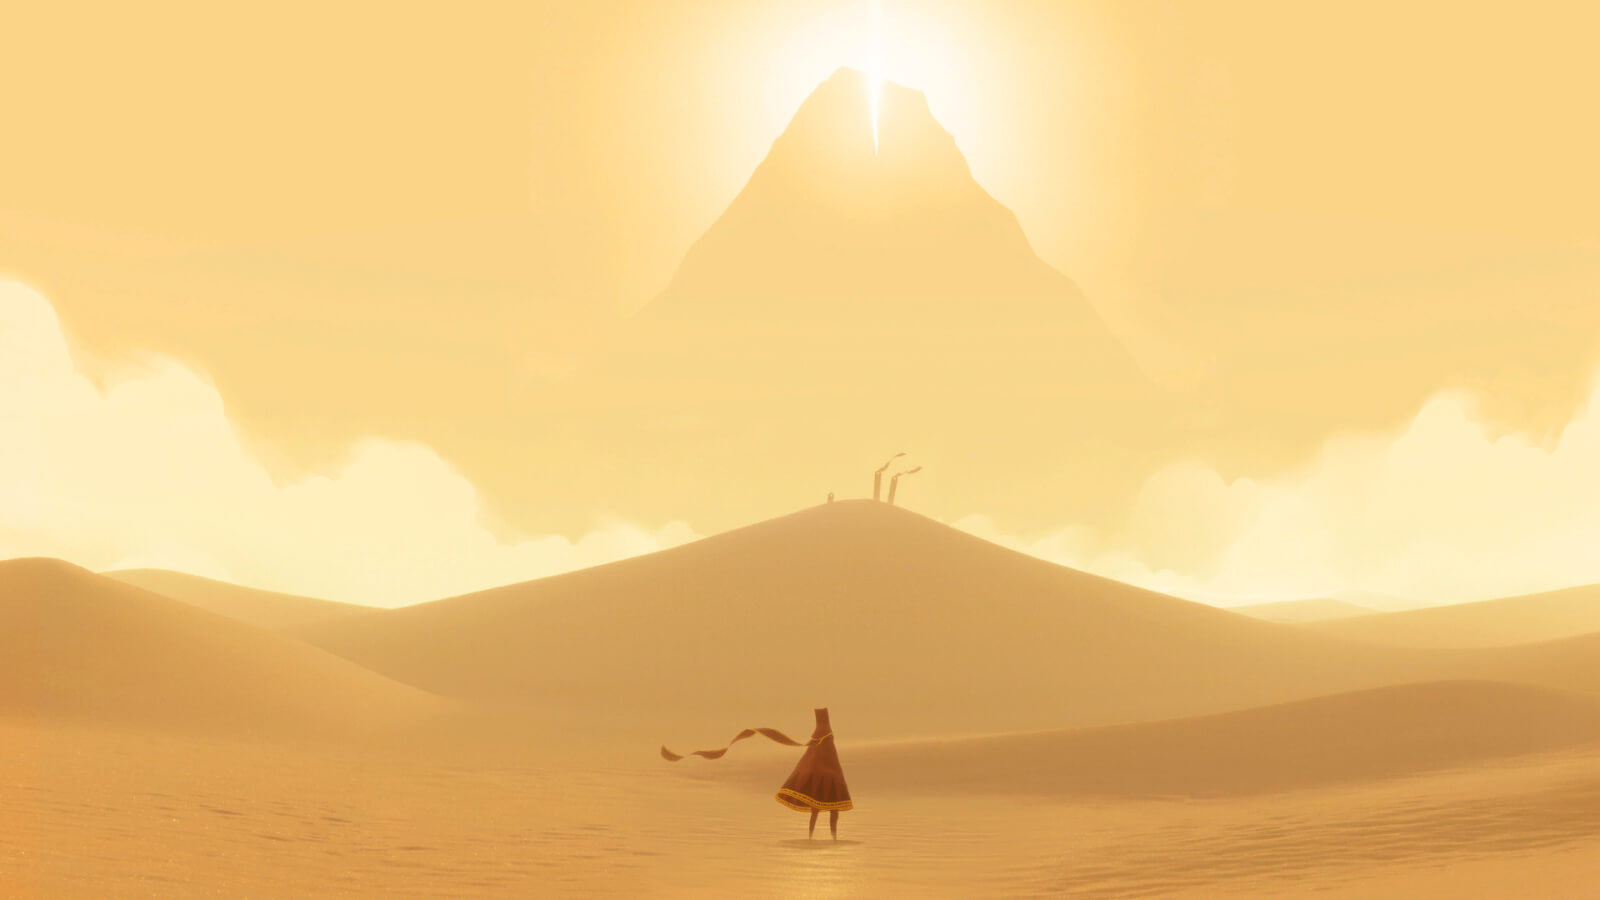 Journey is coming to PC on June 6